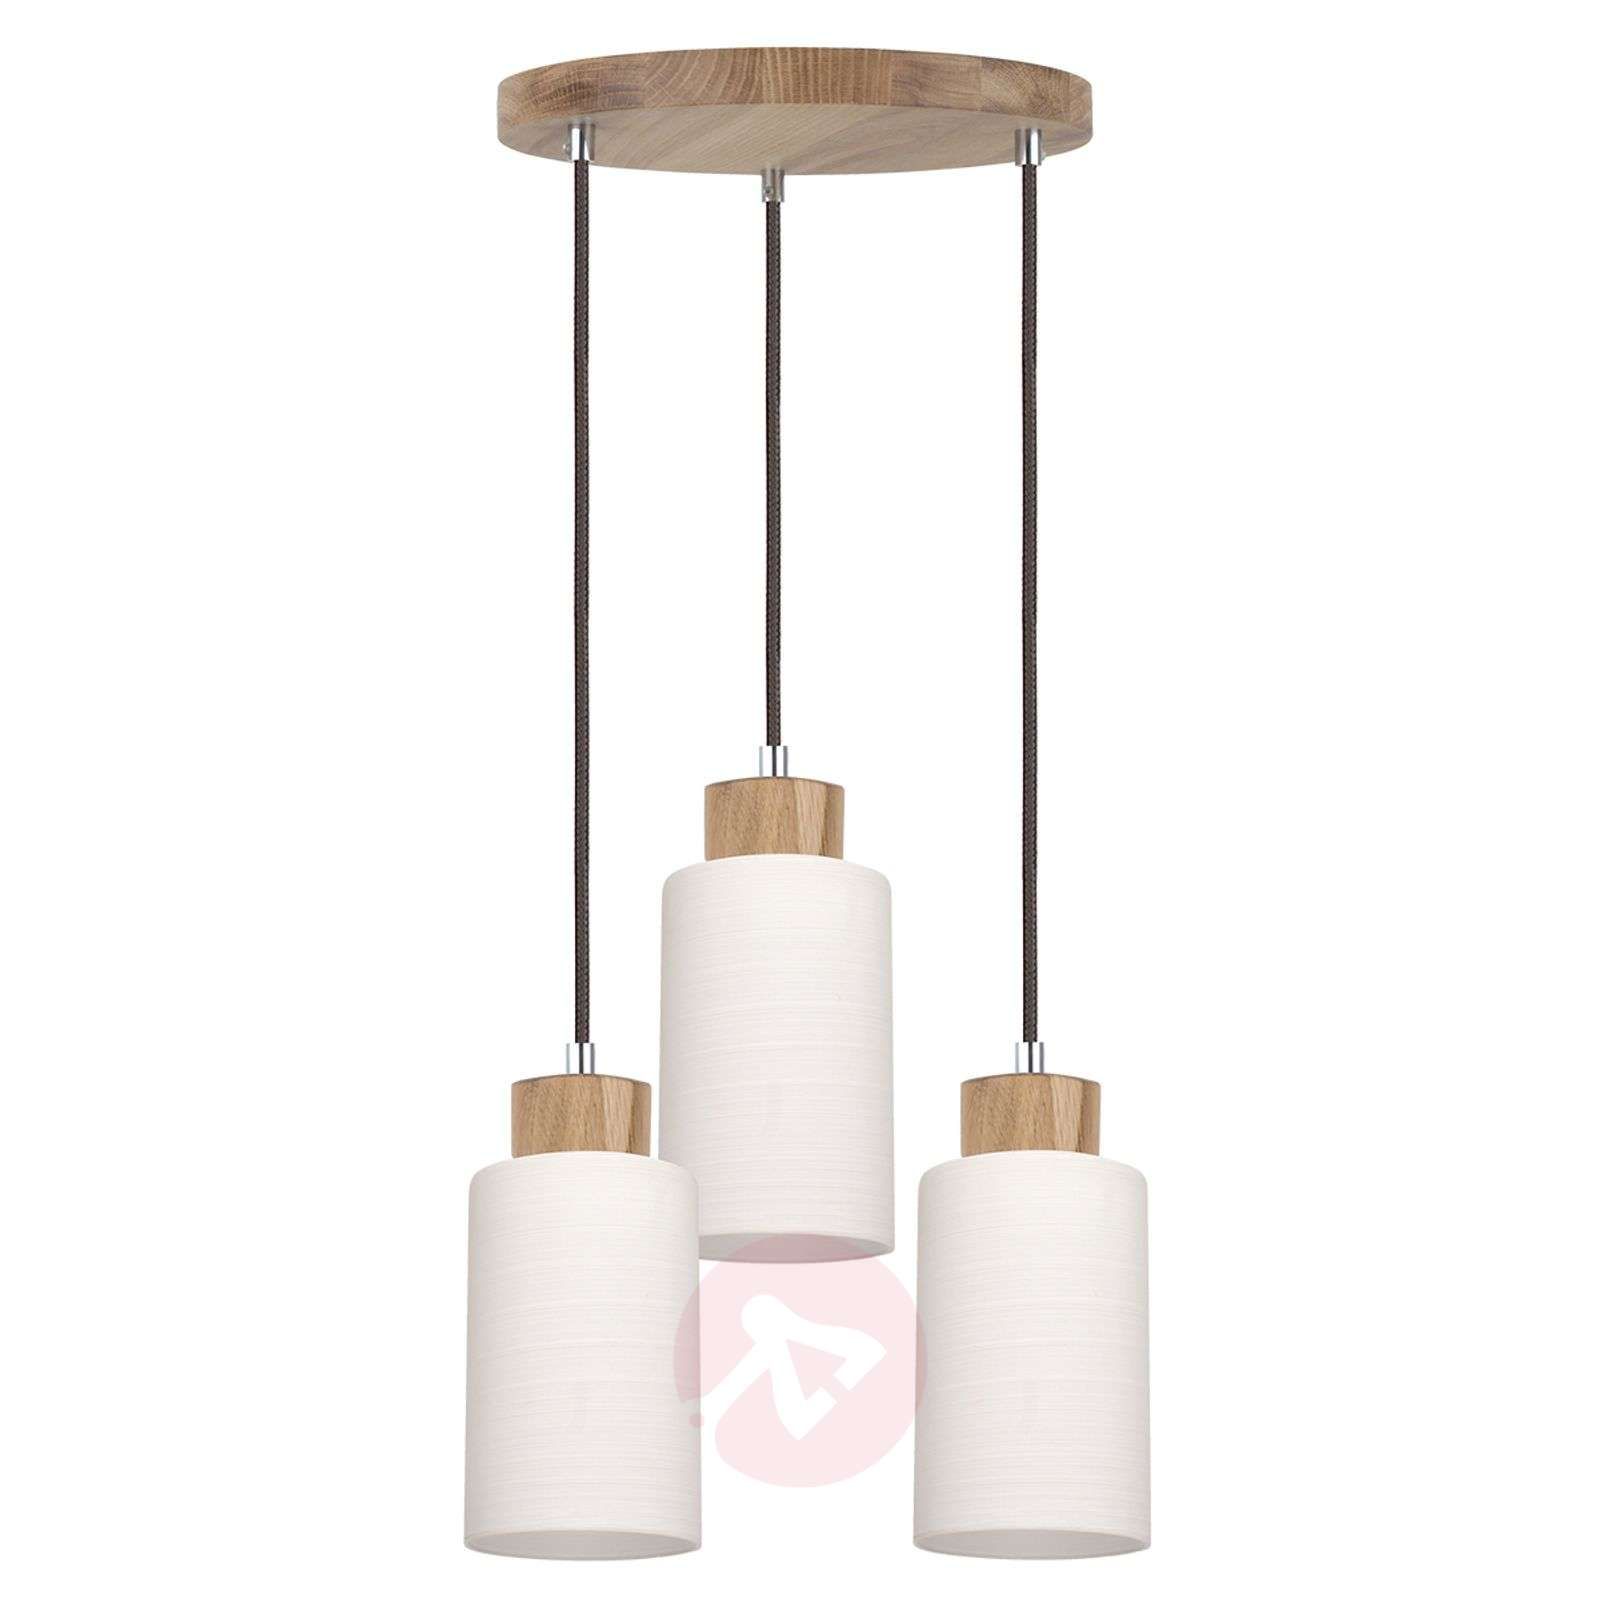 Suspension ronde bosco ch ne huil 3 lampes for Suspension luminaire ronde